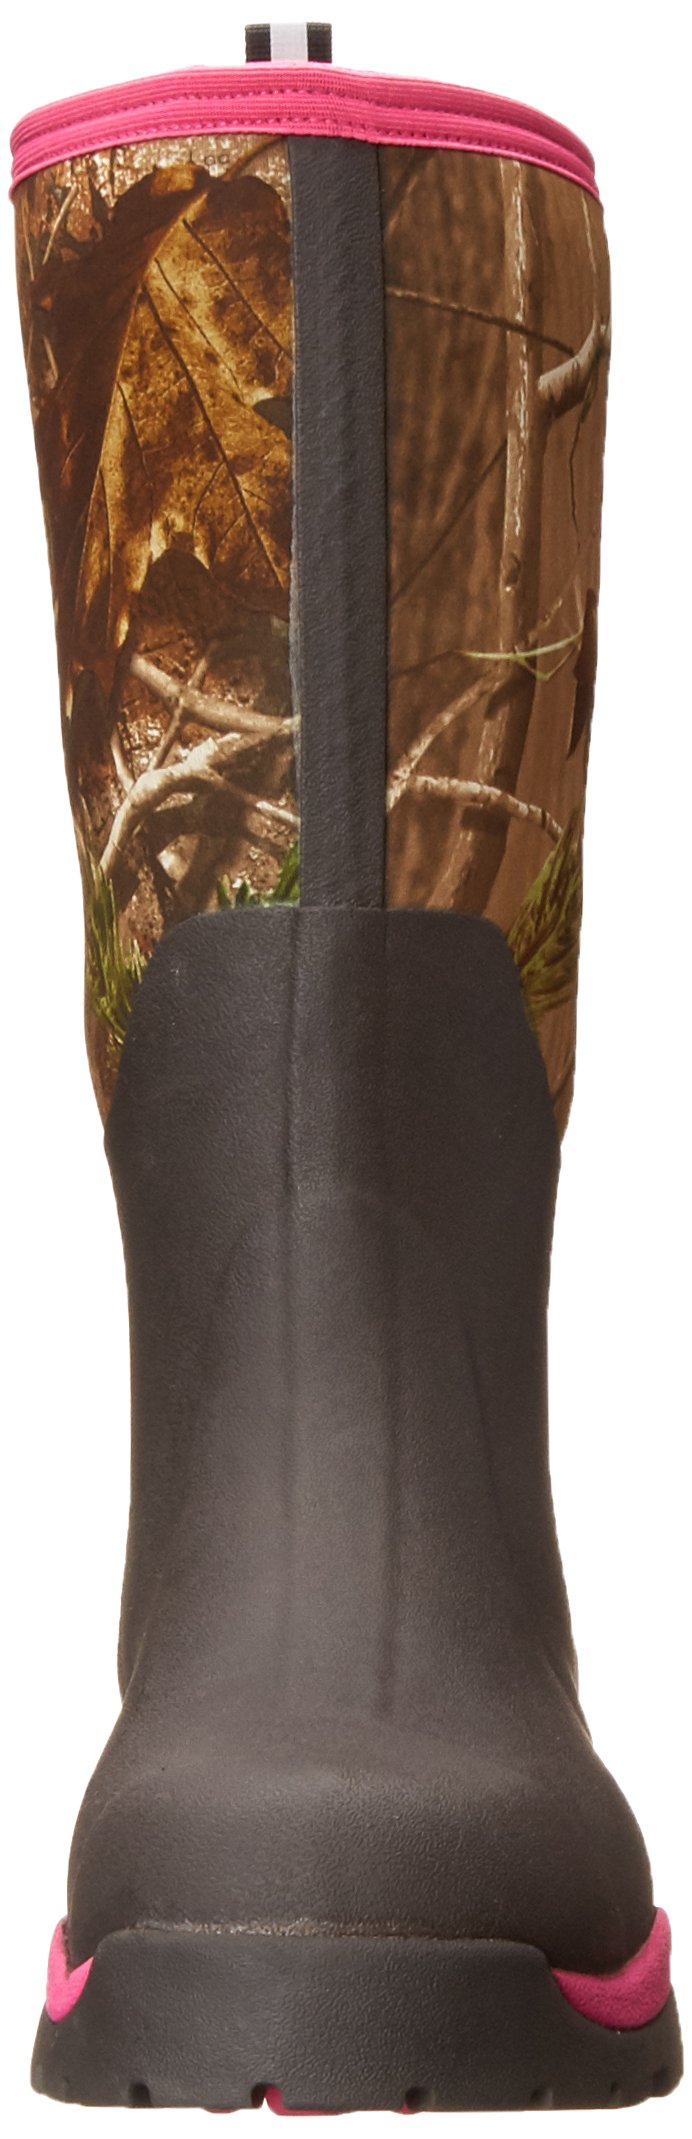 Muck Boot Womens Woody Pk Hunting Shoes, Bark/Realtree/Hot Pink, 8 US/8-8.5 M US by Muck Boot (Image #4)